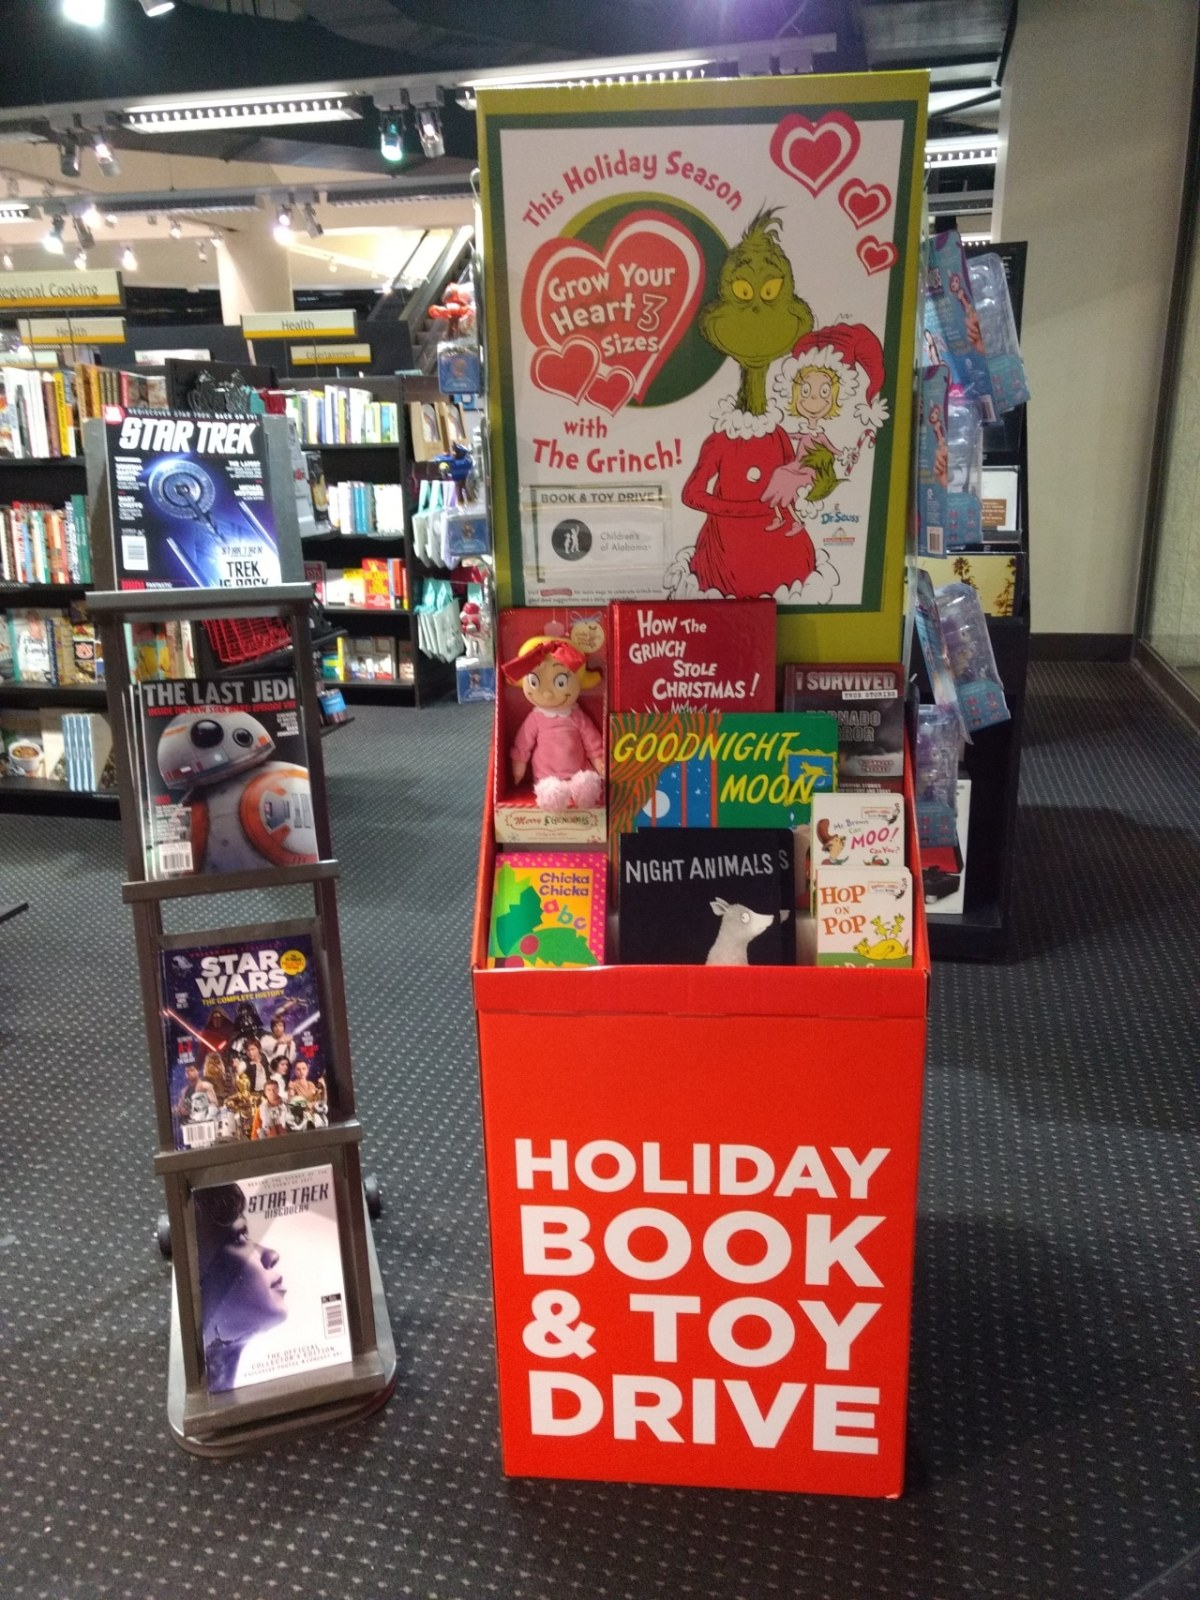 Books-A-Million spreads holiday cheer with book and toy drive for charity